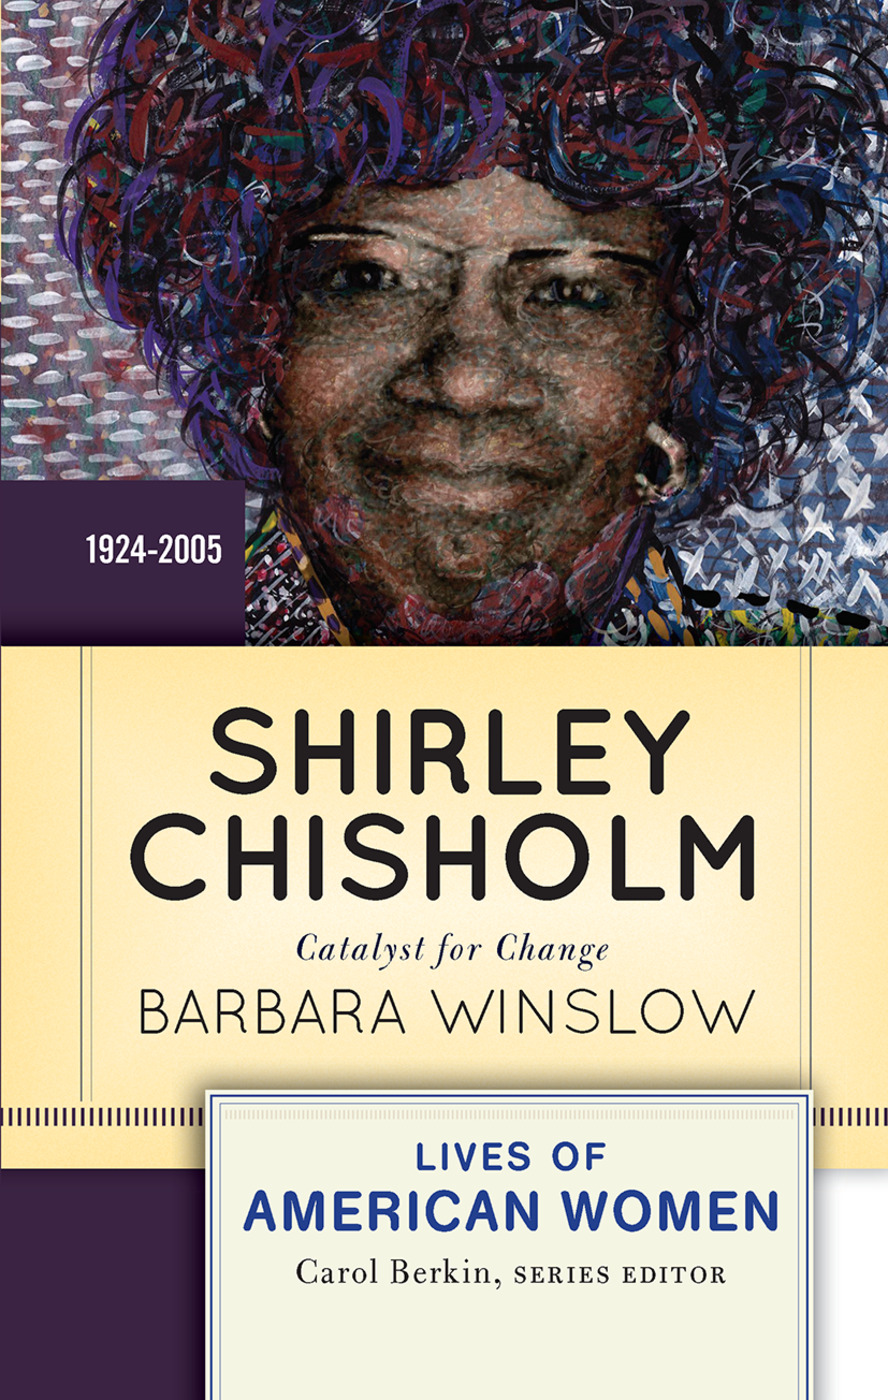 Shirley Chisholm: Catalyst for Change book cover